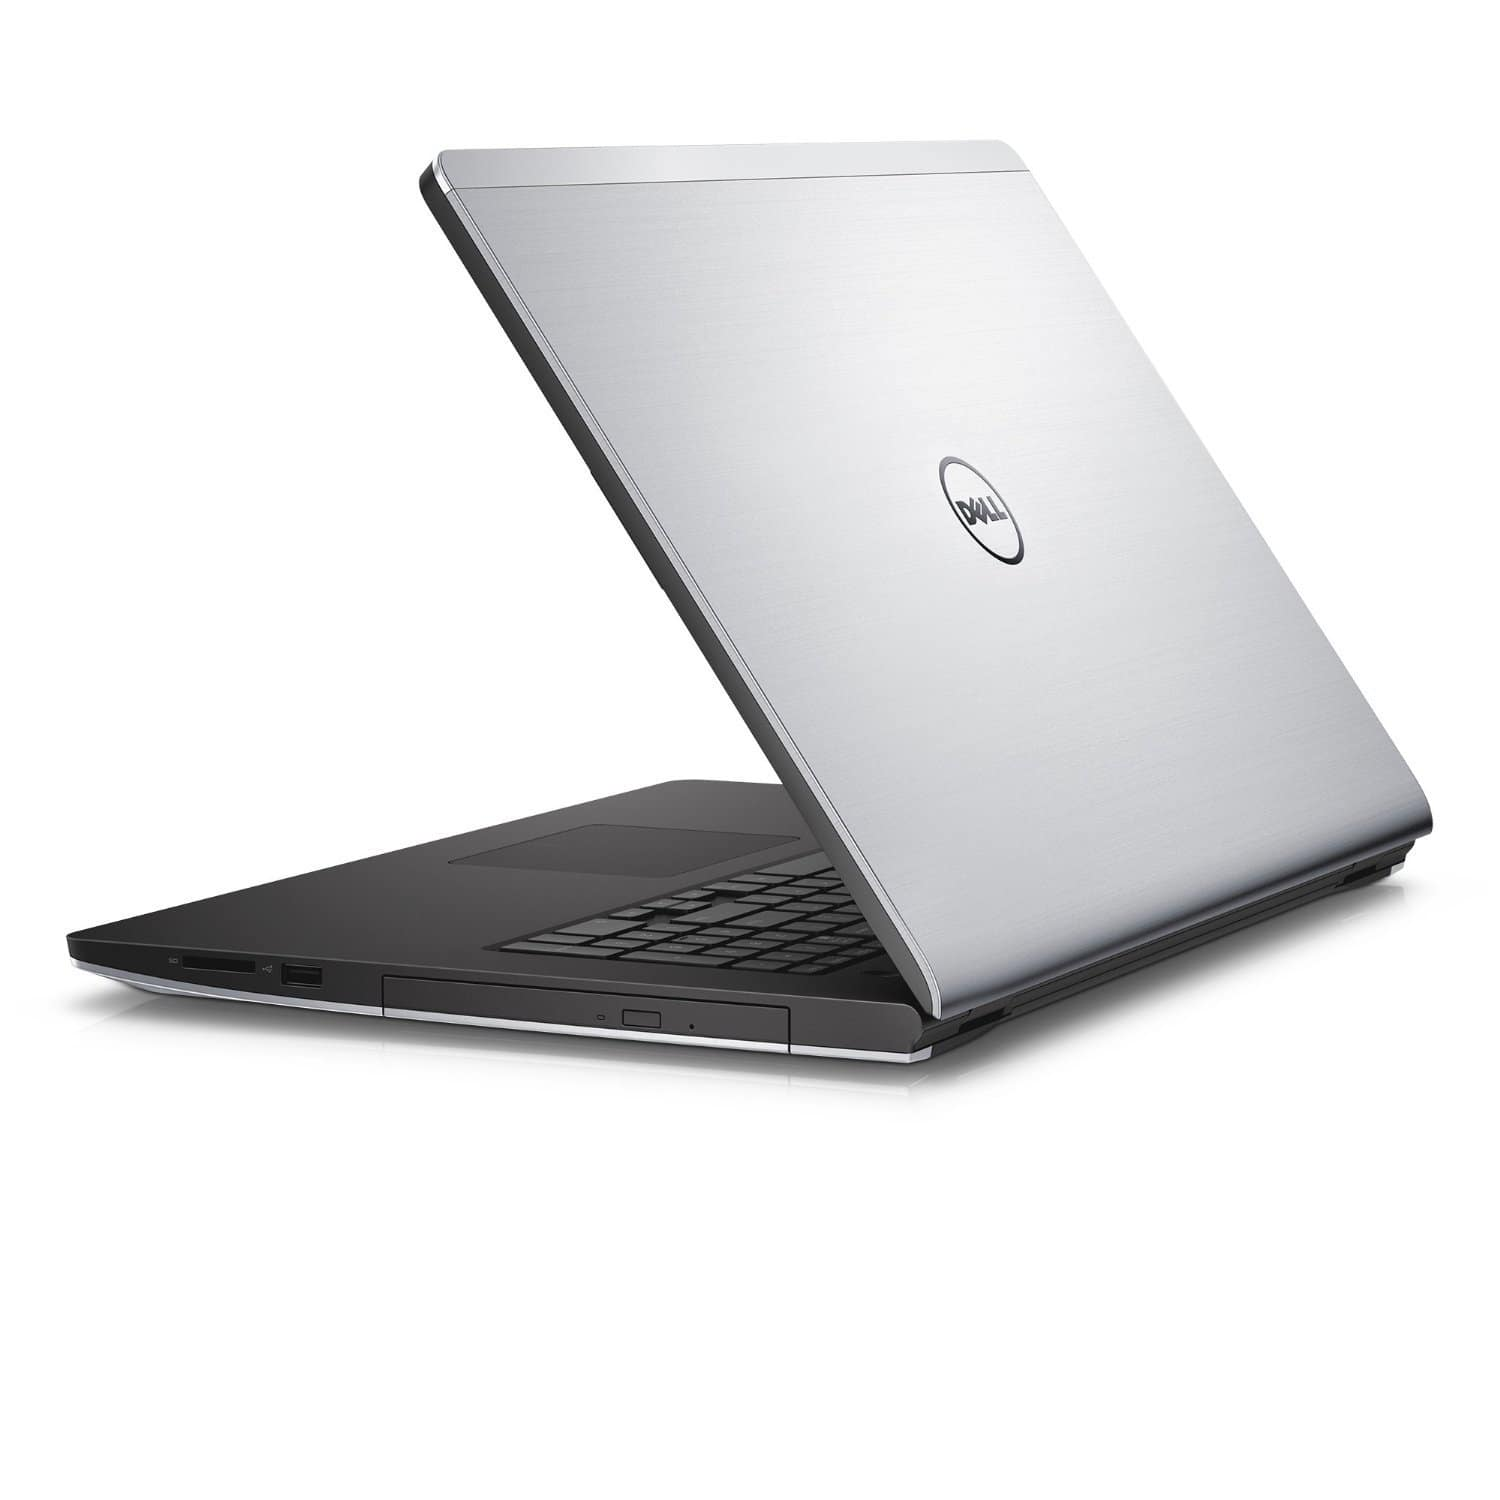 Dell Outlet Refurbished Inspiron Laptops & Ultrabooks, Monitors  30% off & More + Free Shipping